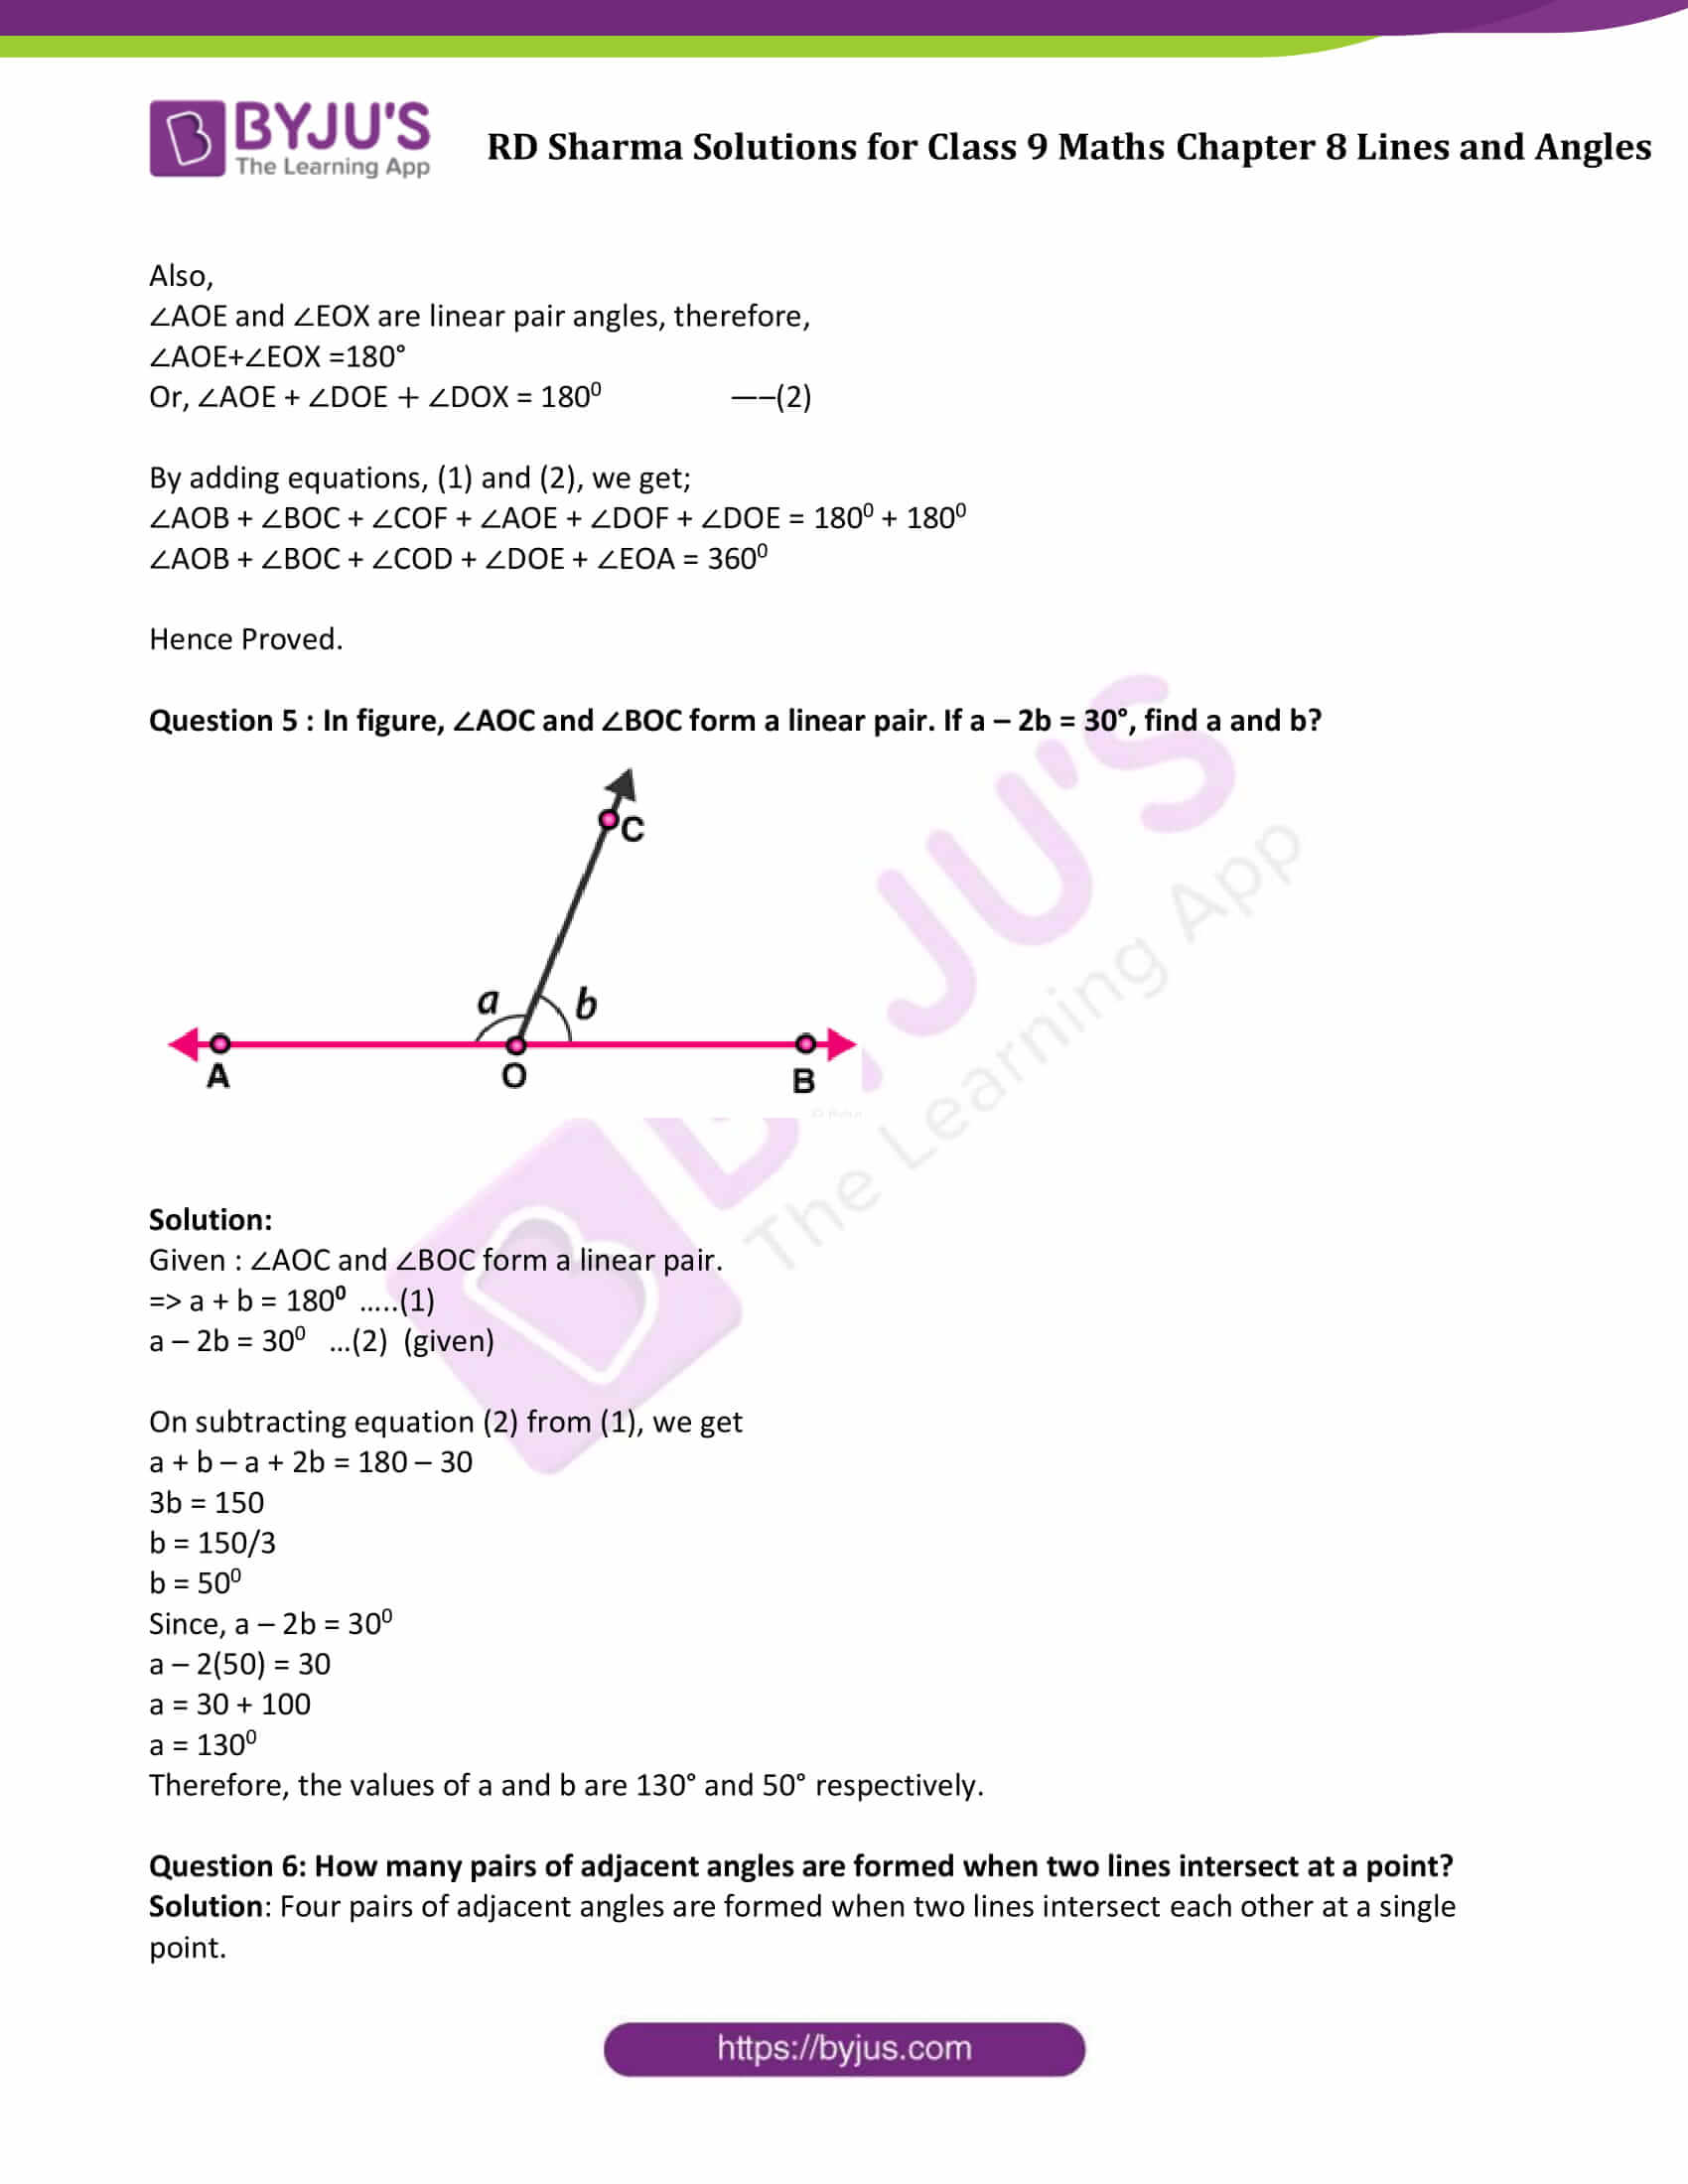 RD Sharma Solution class 9 Maths Chapter 8 Lines and Angles 07